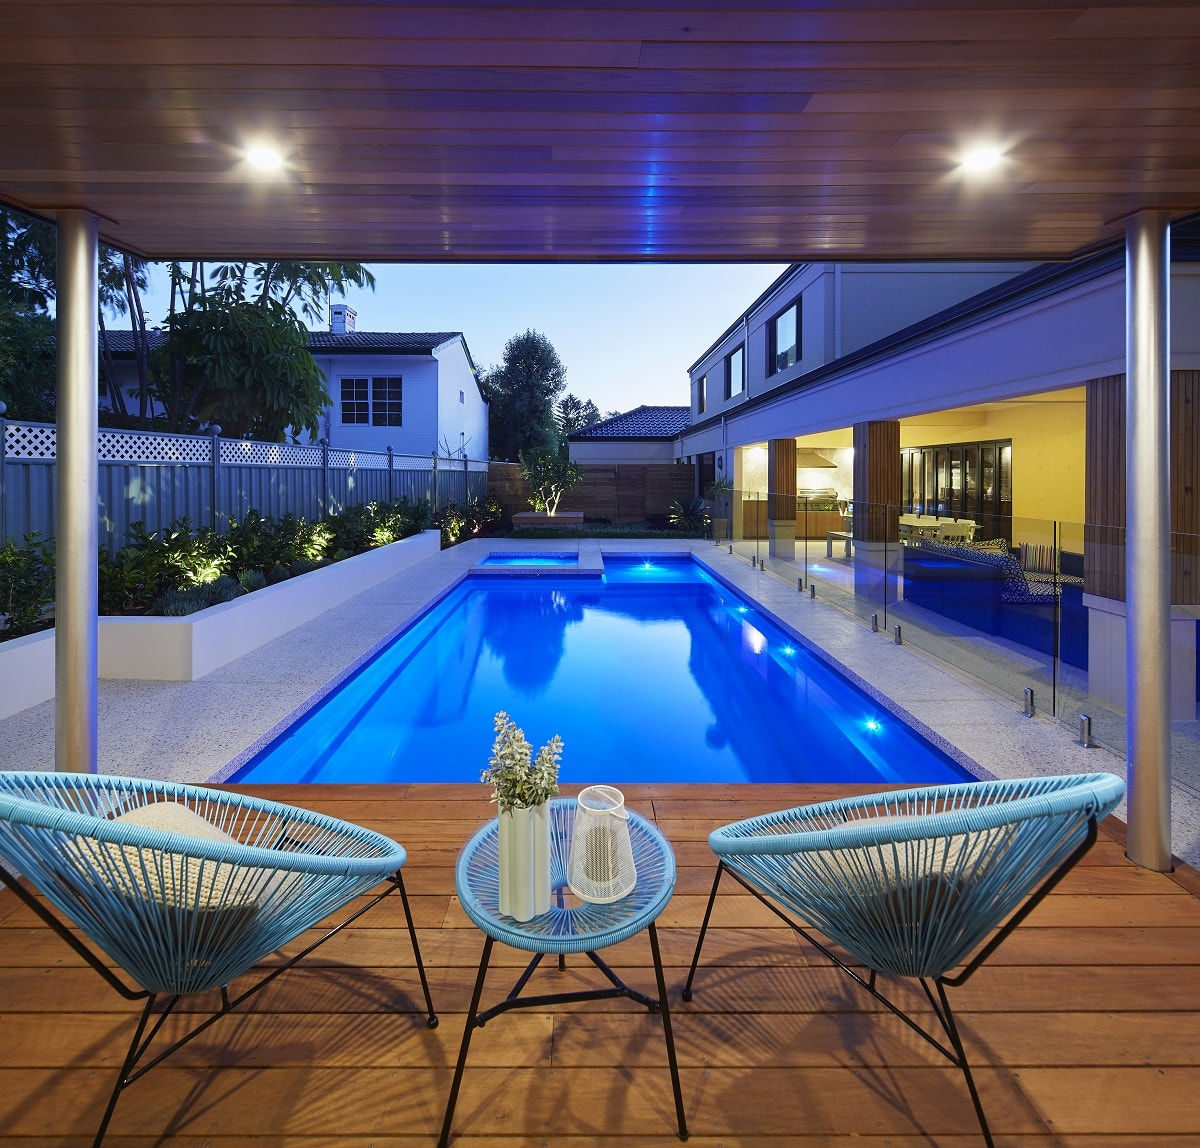 Brooklyn Pool & Spa 9.6m x 4.4m 3